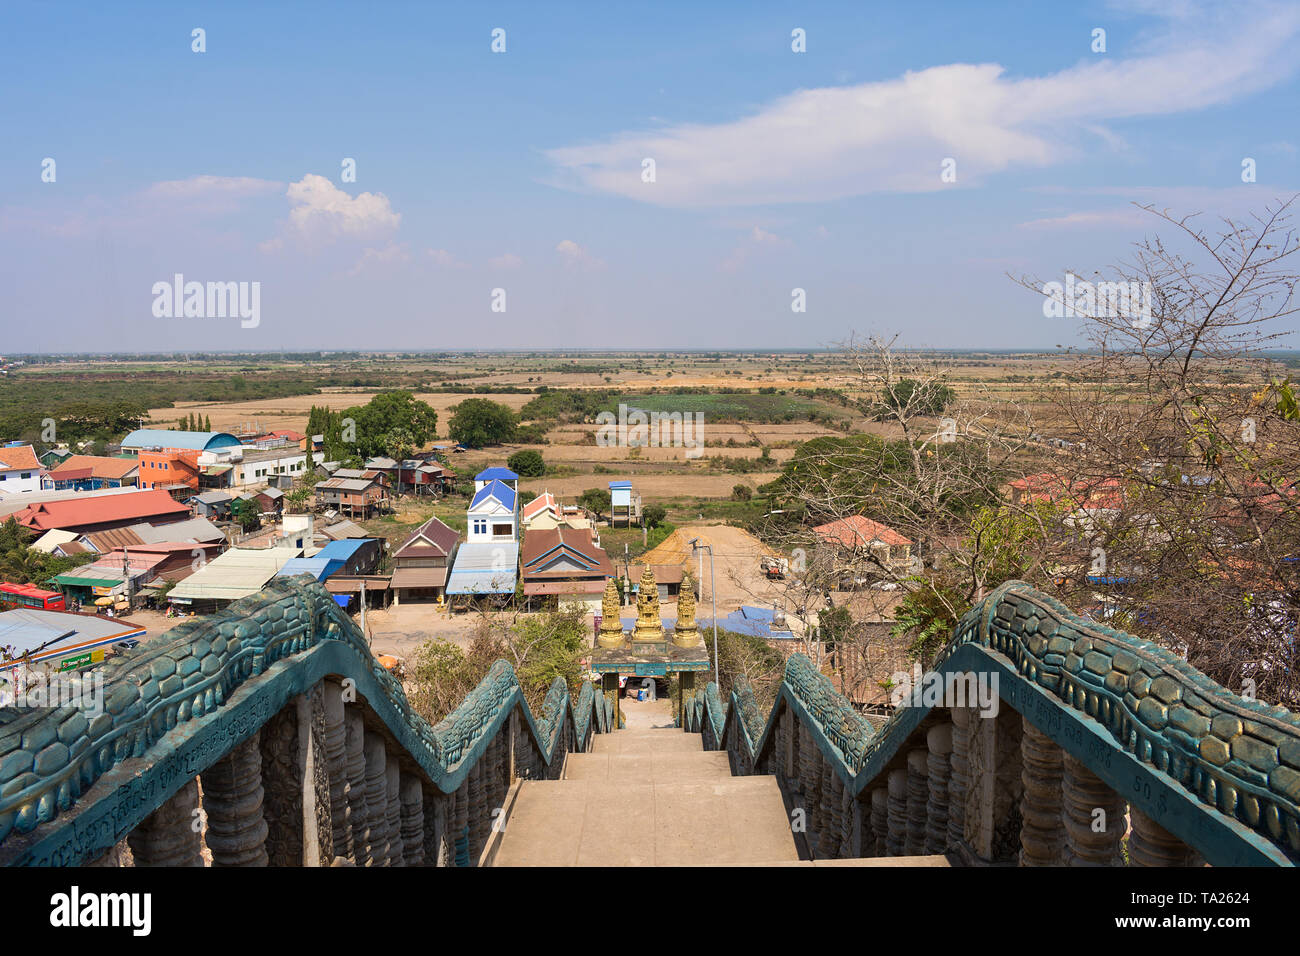 Scenic View from Phnom Krom Temple, Siem Reap, Cambodia - Stock Image